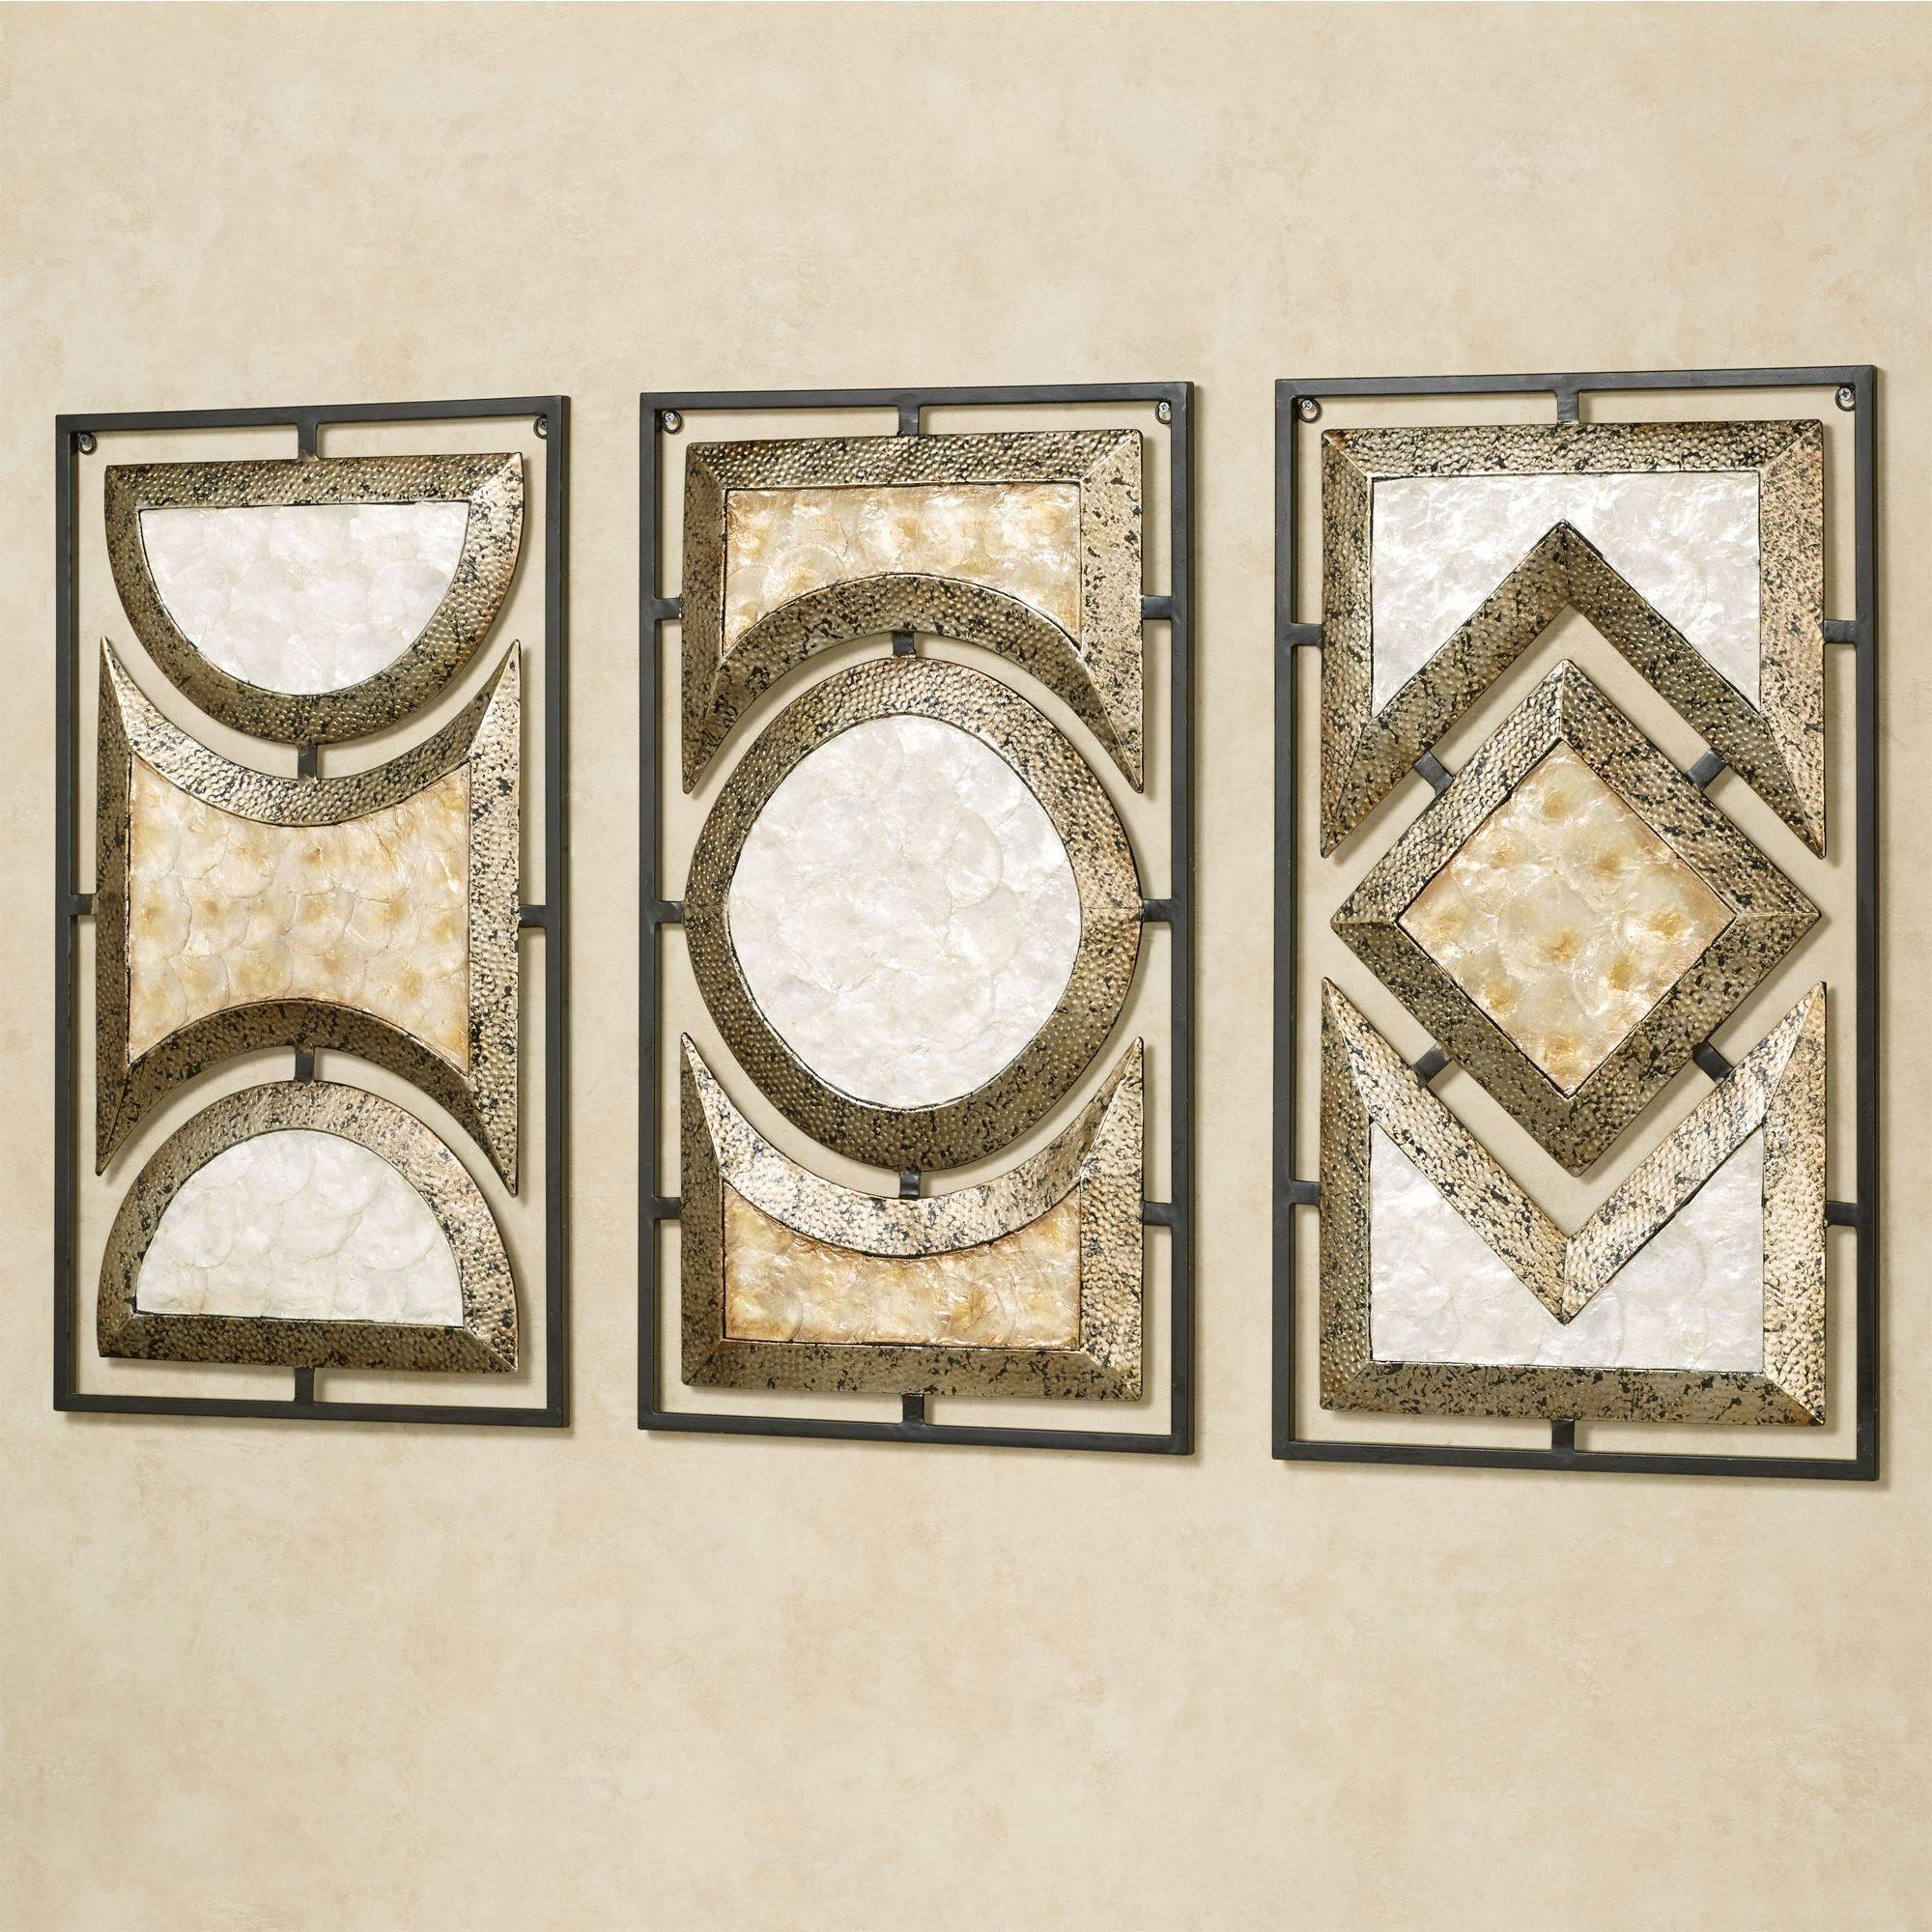 Wall Art, Metal Wall Art, Wooden Wall Art | Touch Of Class Pertaining To Most Recent Metal Wall Artworks (View 5 of 20)